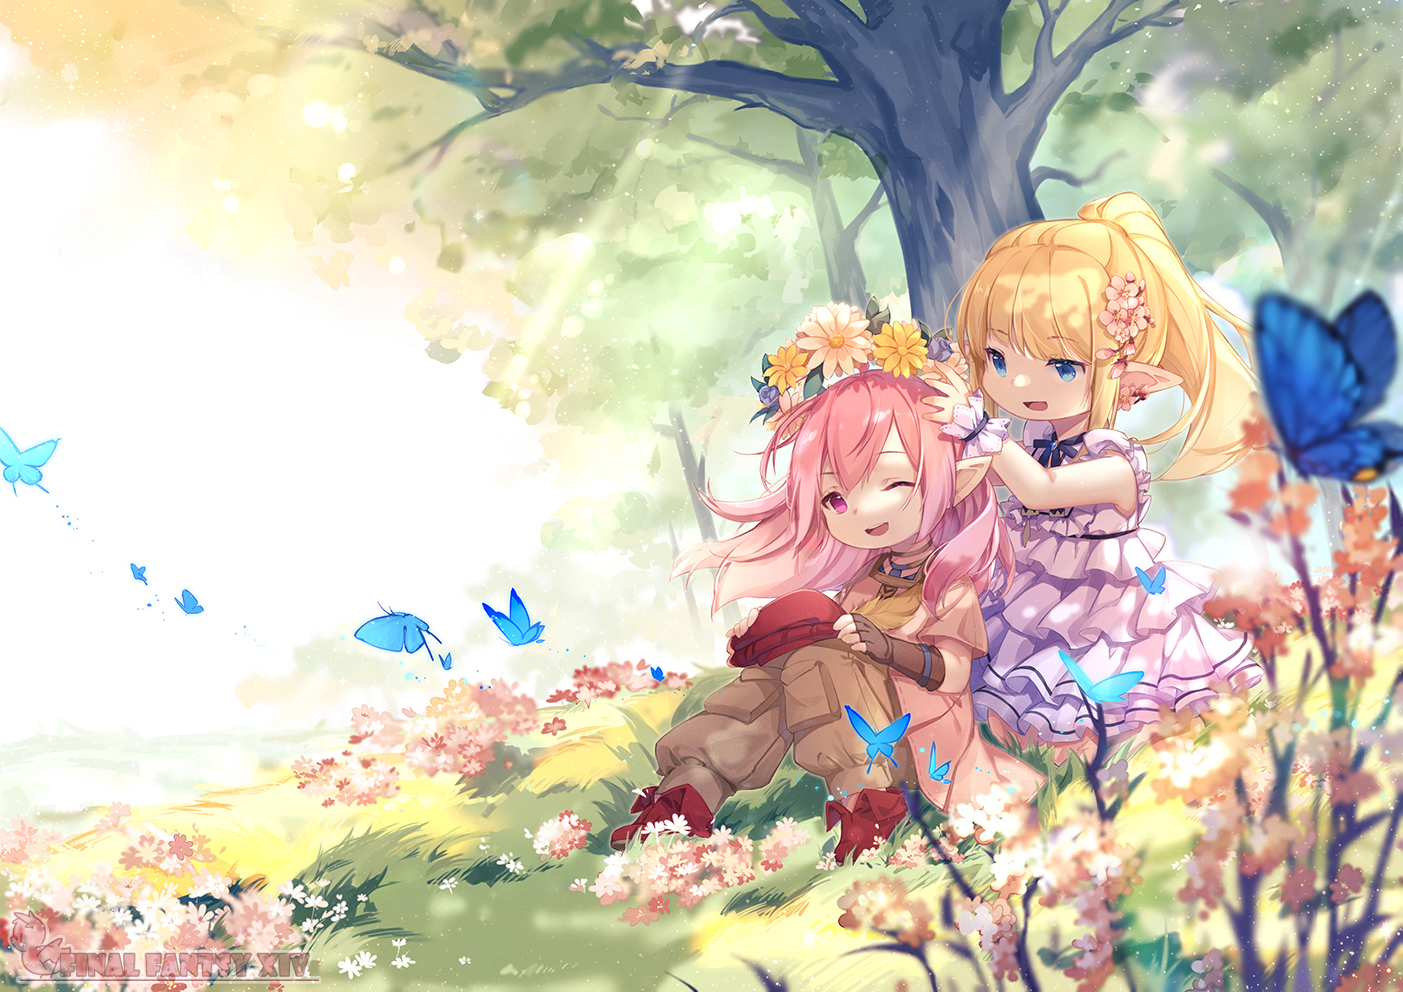 blonde_hair blue_eyes butterfly dress elbow_gloves final_fantasy final_fantasy_xiv flowers fy_fei_xiao_ya gloves hat lalafell loli pink_eyes pink_hair pointed_ears tree